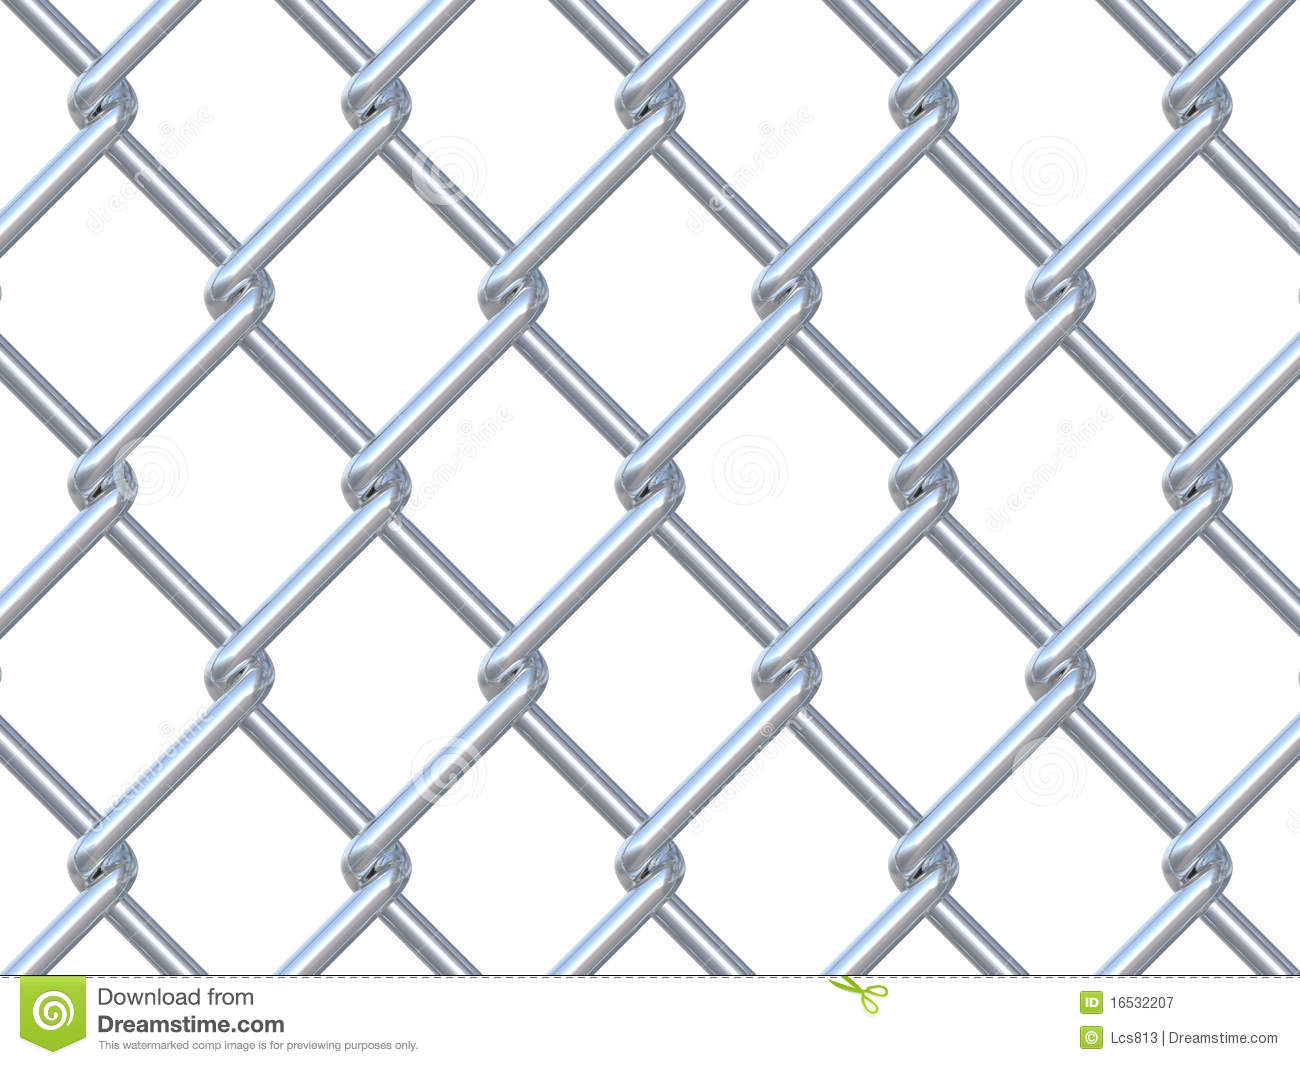 Chainlink fence royalty free stock image cartoondealer